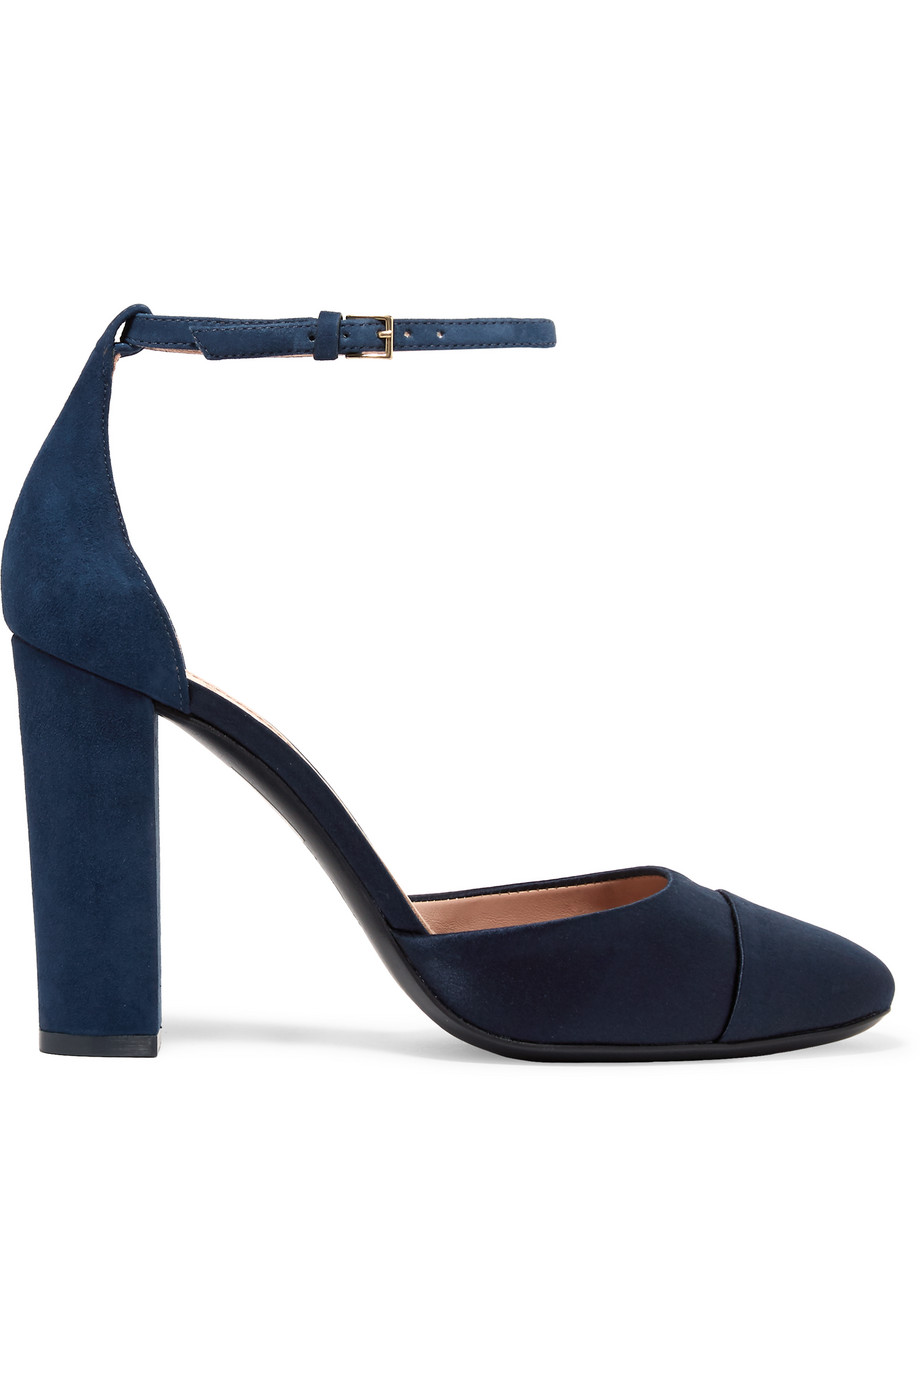 Tory Burch Rousseau Suede and Satin Pumps, Navy, Women's, Size: 7.5